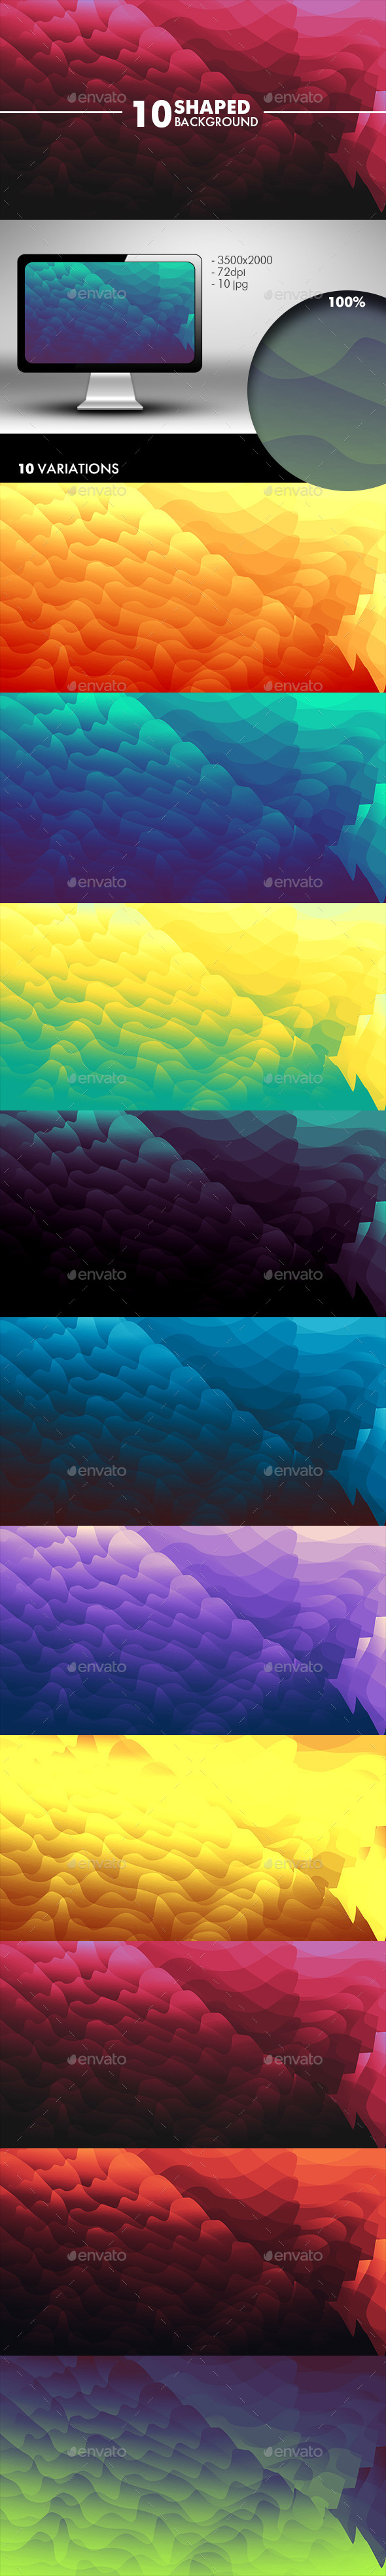 Shaped Wave Background  - Abstract Backgrounds